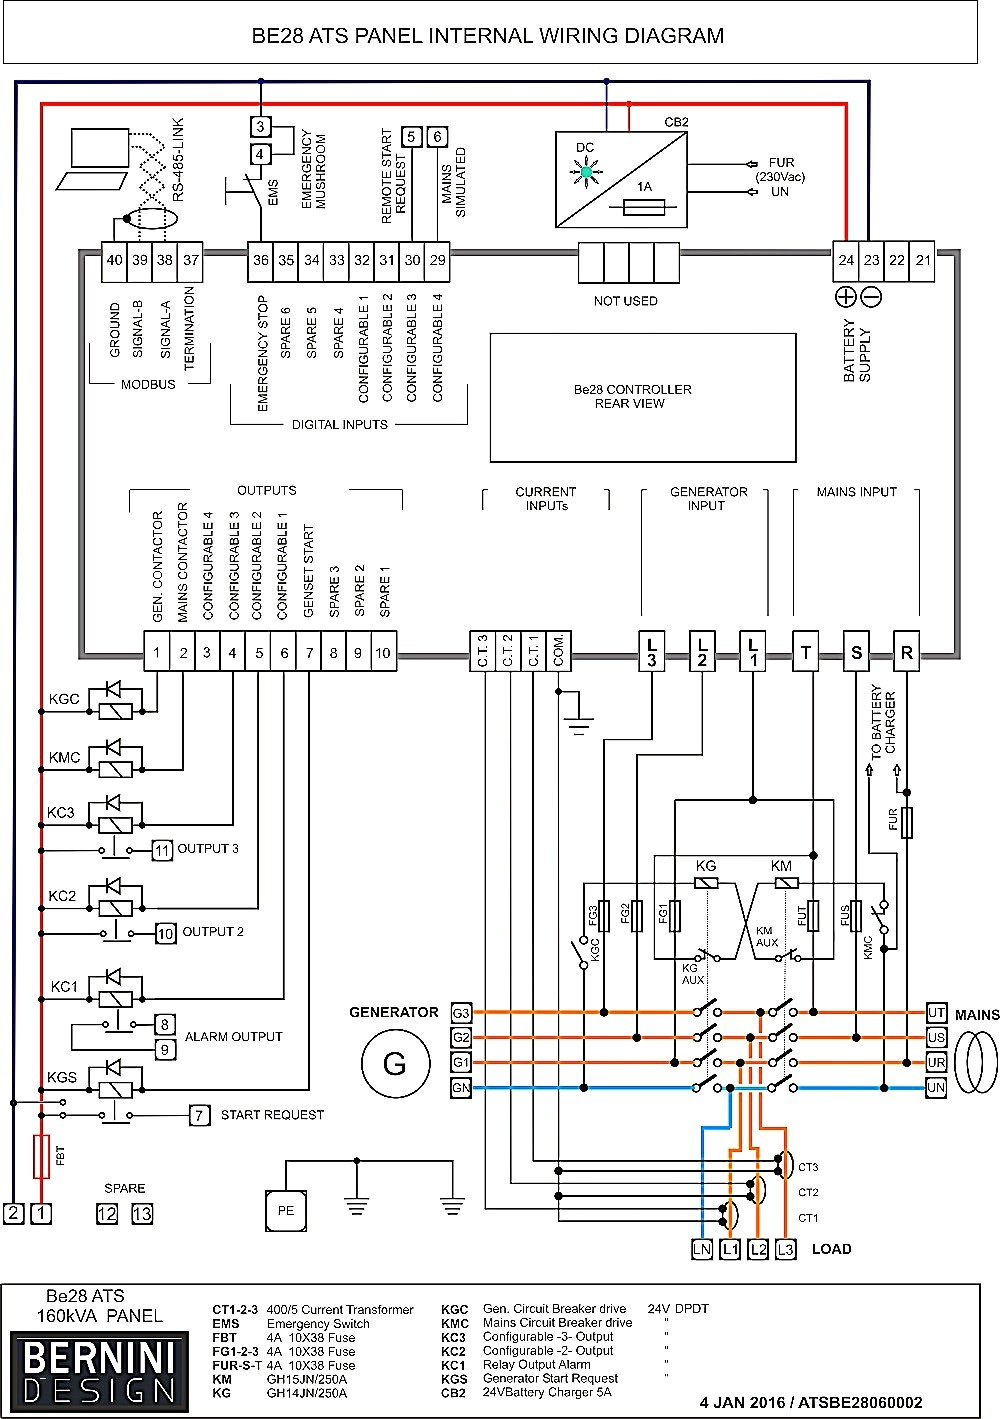 asco 7000 series ats wiring diagram Collection-Transfer Switch Wiring Diagram Inspirational Generac Automatic Beauteous 3-h